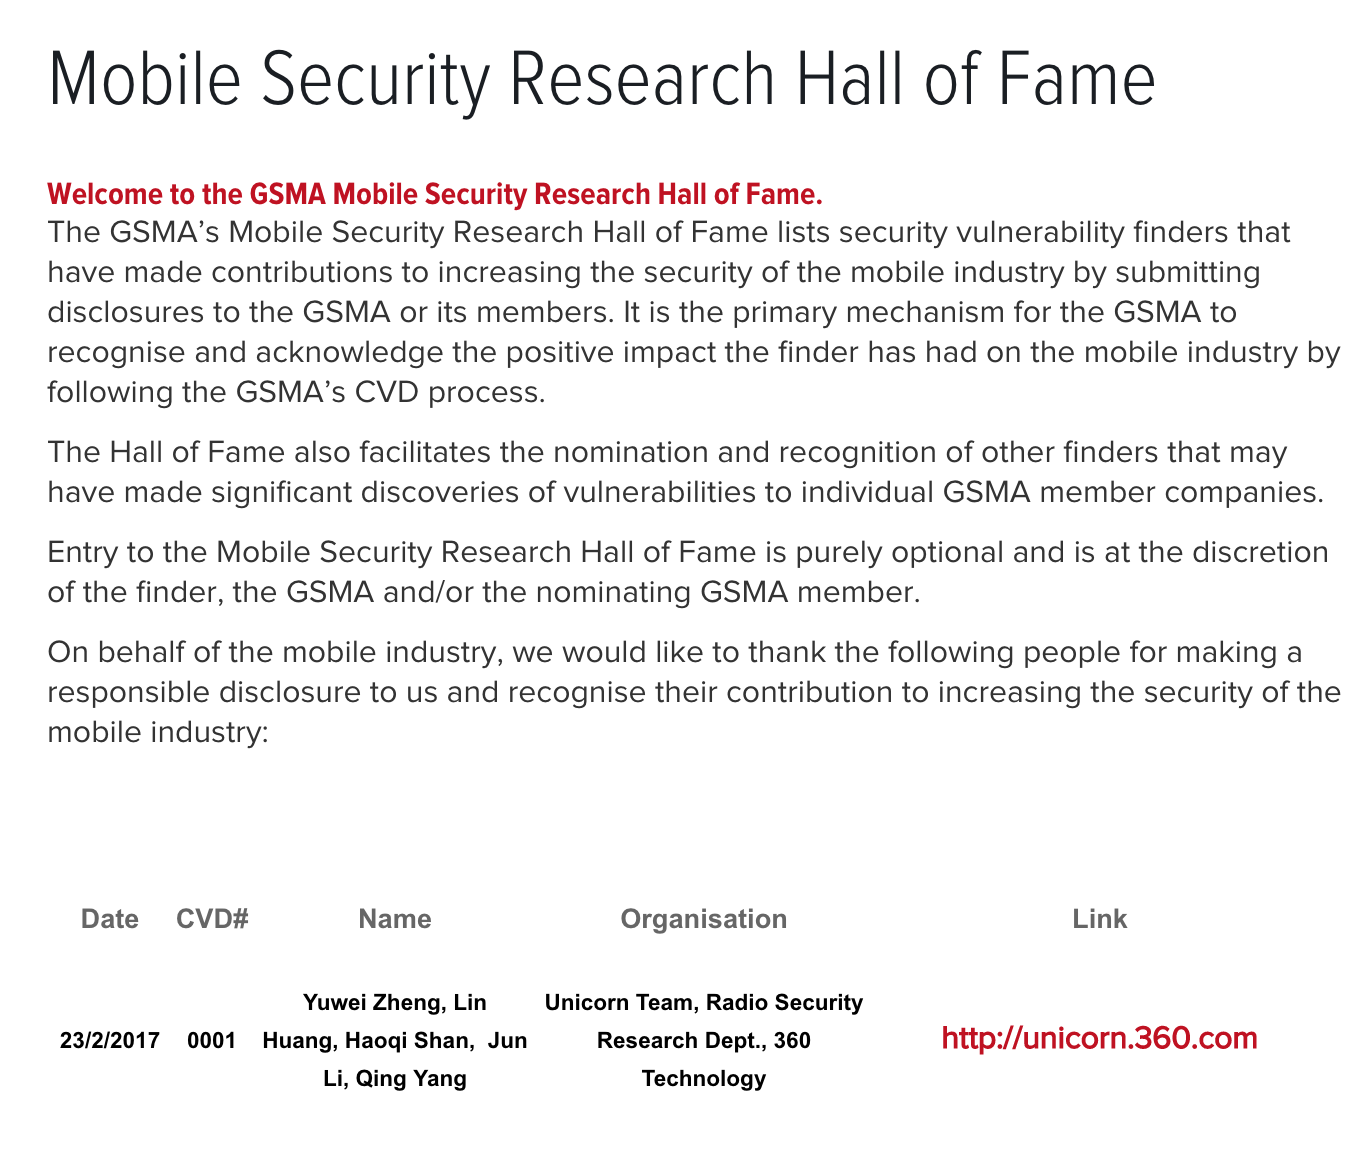 Mobile Security Research Hall of Fame